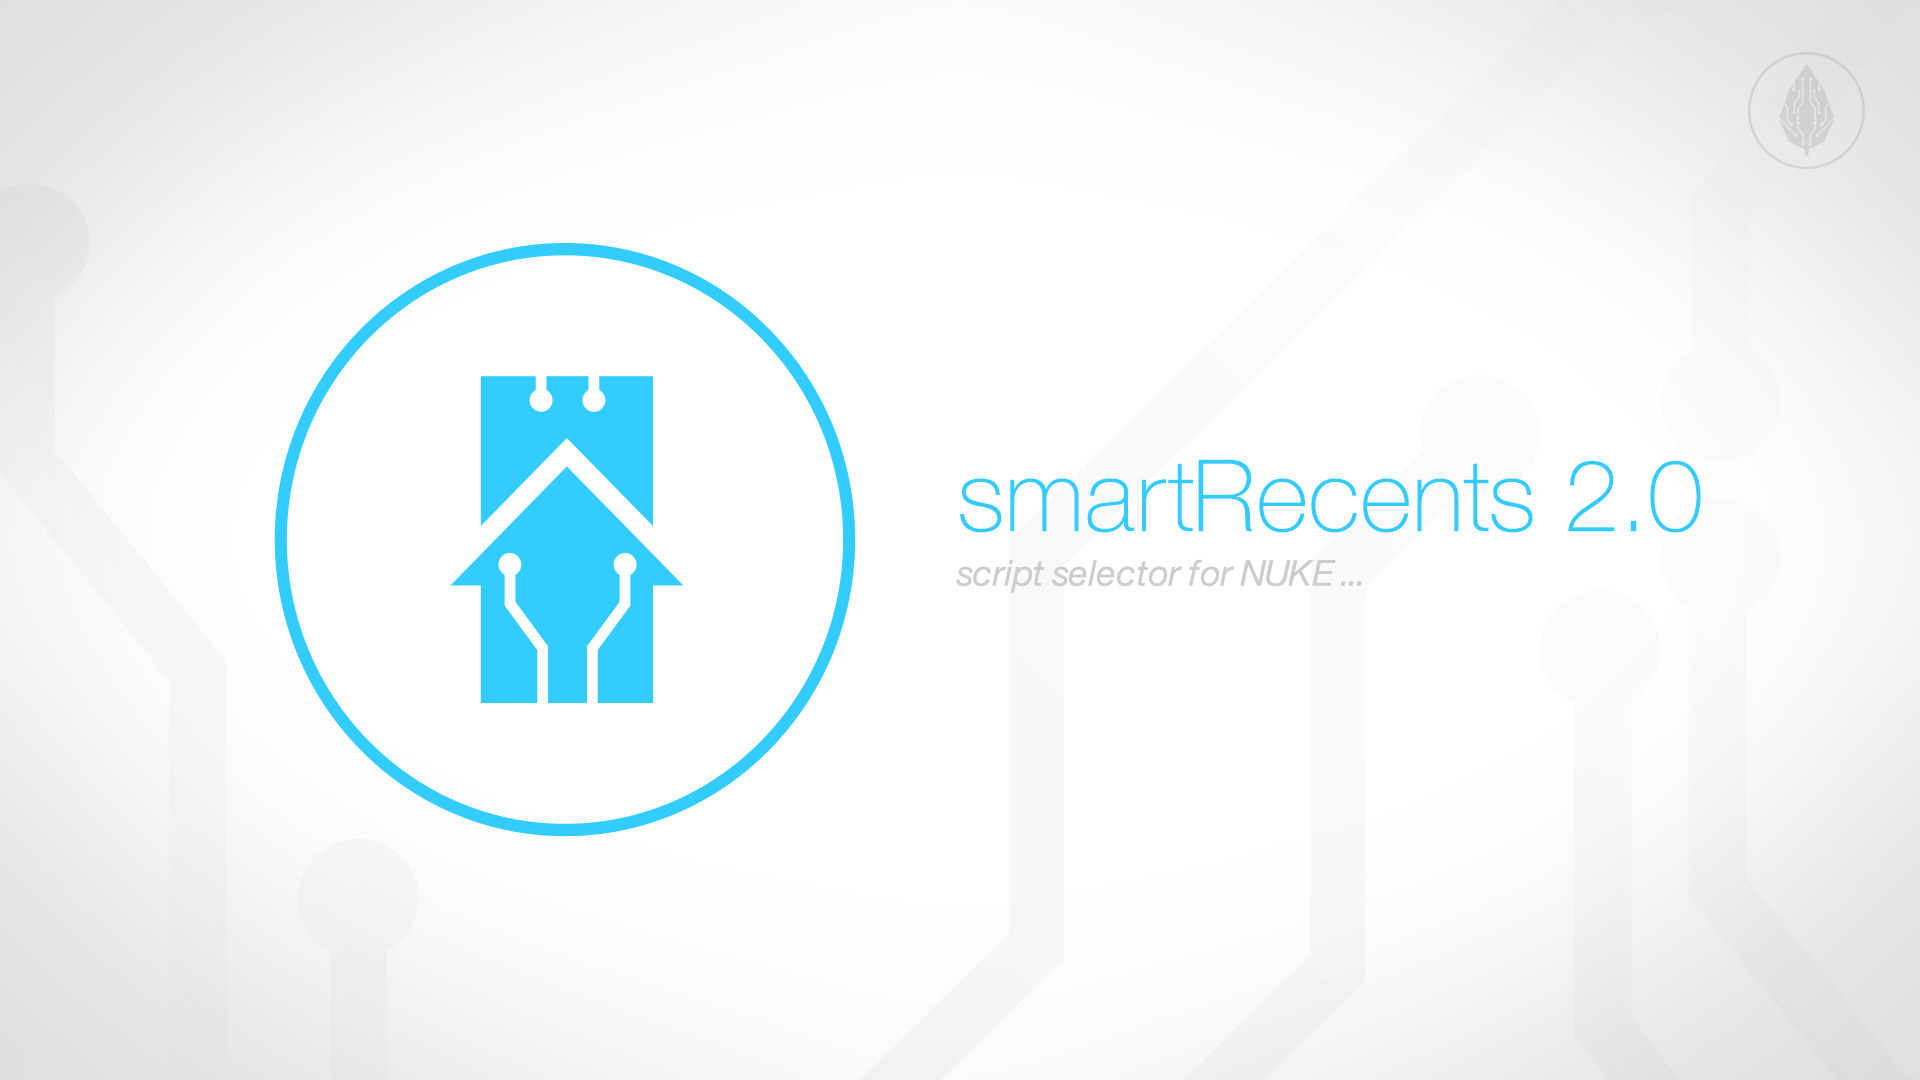 Published smartRecents 2.0